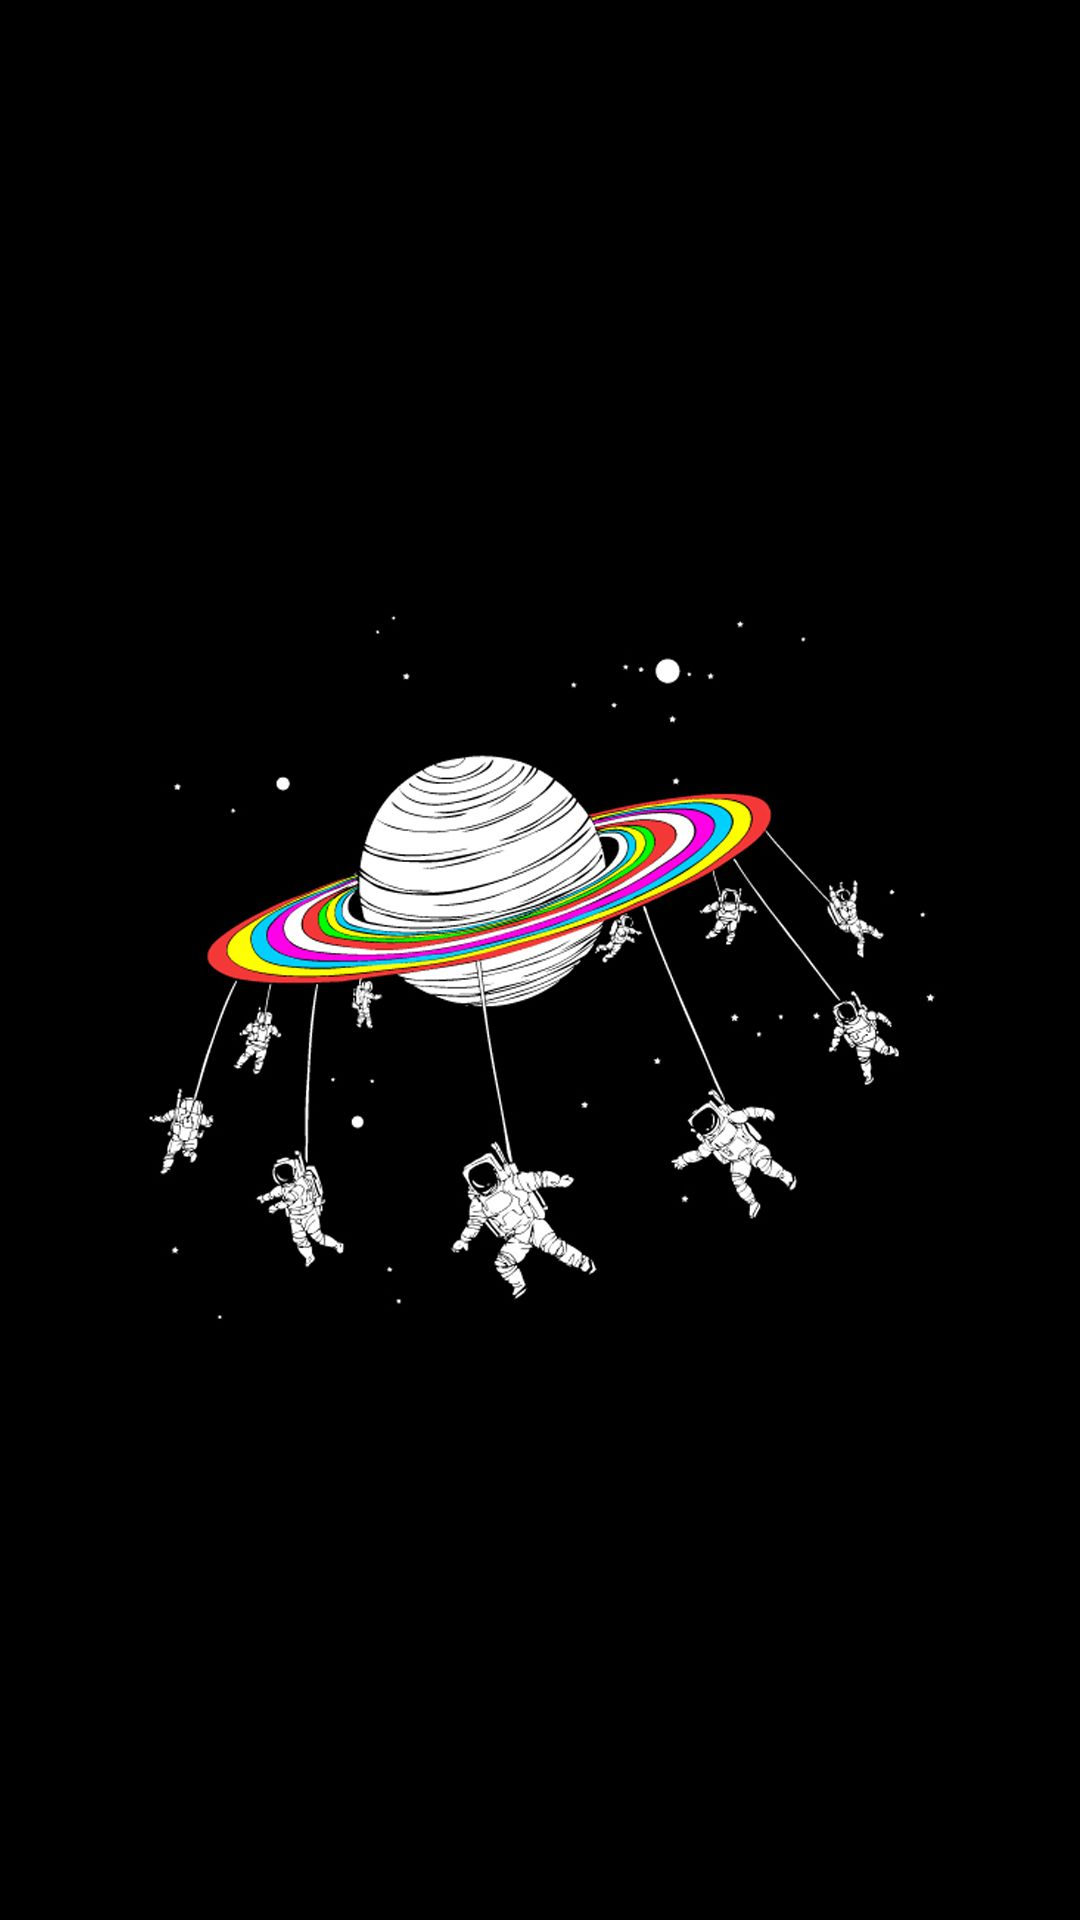 Astronauts Merry Go Round Planet Space Iphone 6 Wallpaper Astronaut Wallpaper Planets Wallpaper Iphone Wallpaper